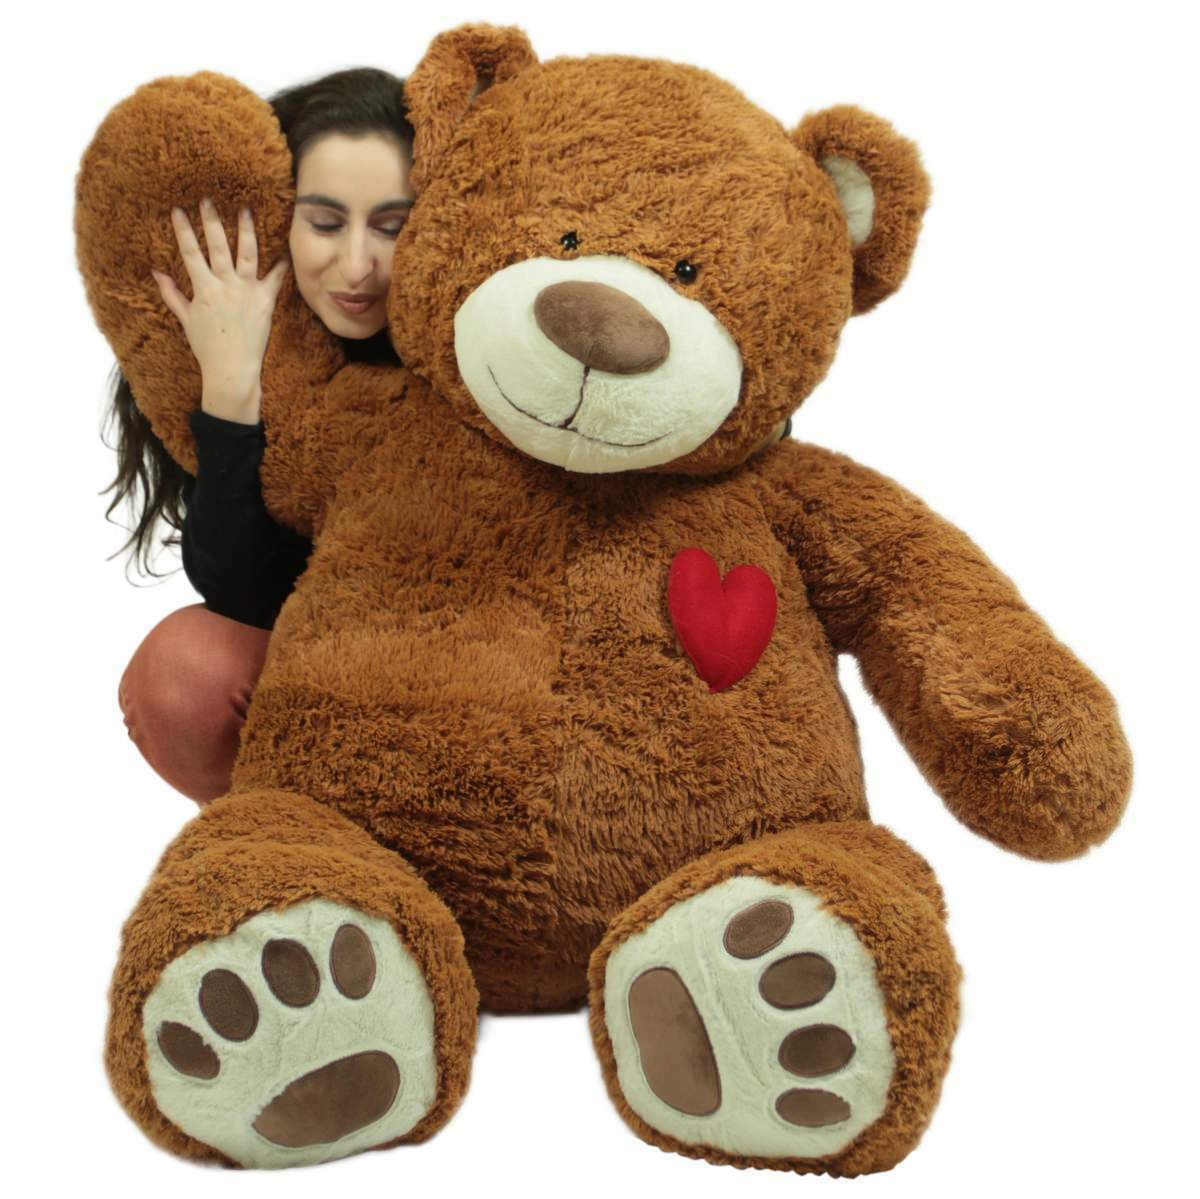 Big Plush Giant 5 Foot Teddy Bear with Heart on Chest Huge Valentine Gift Love